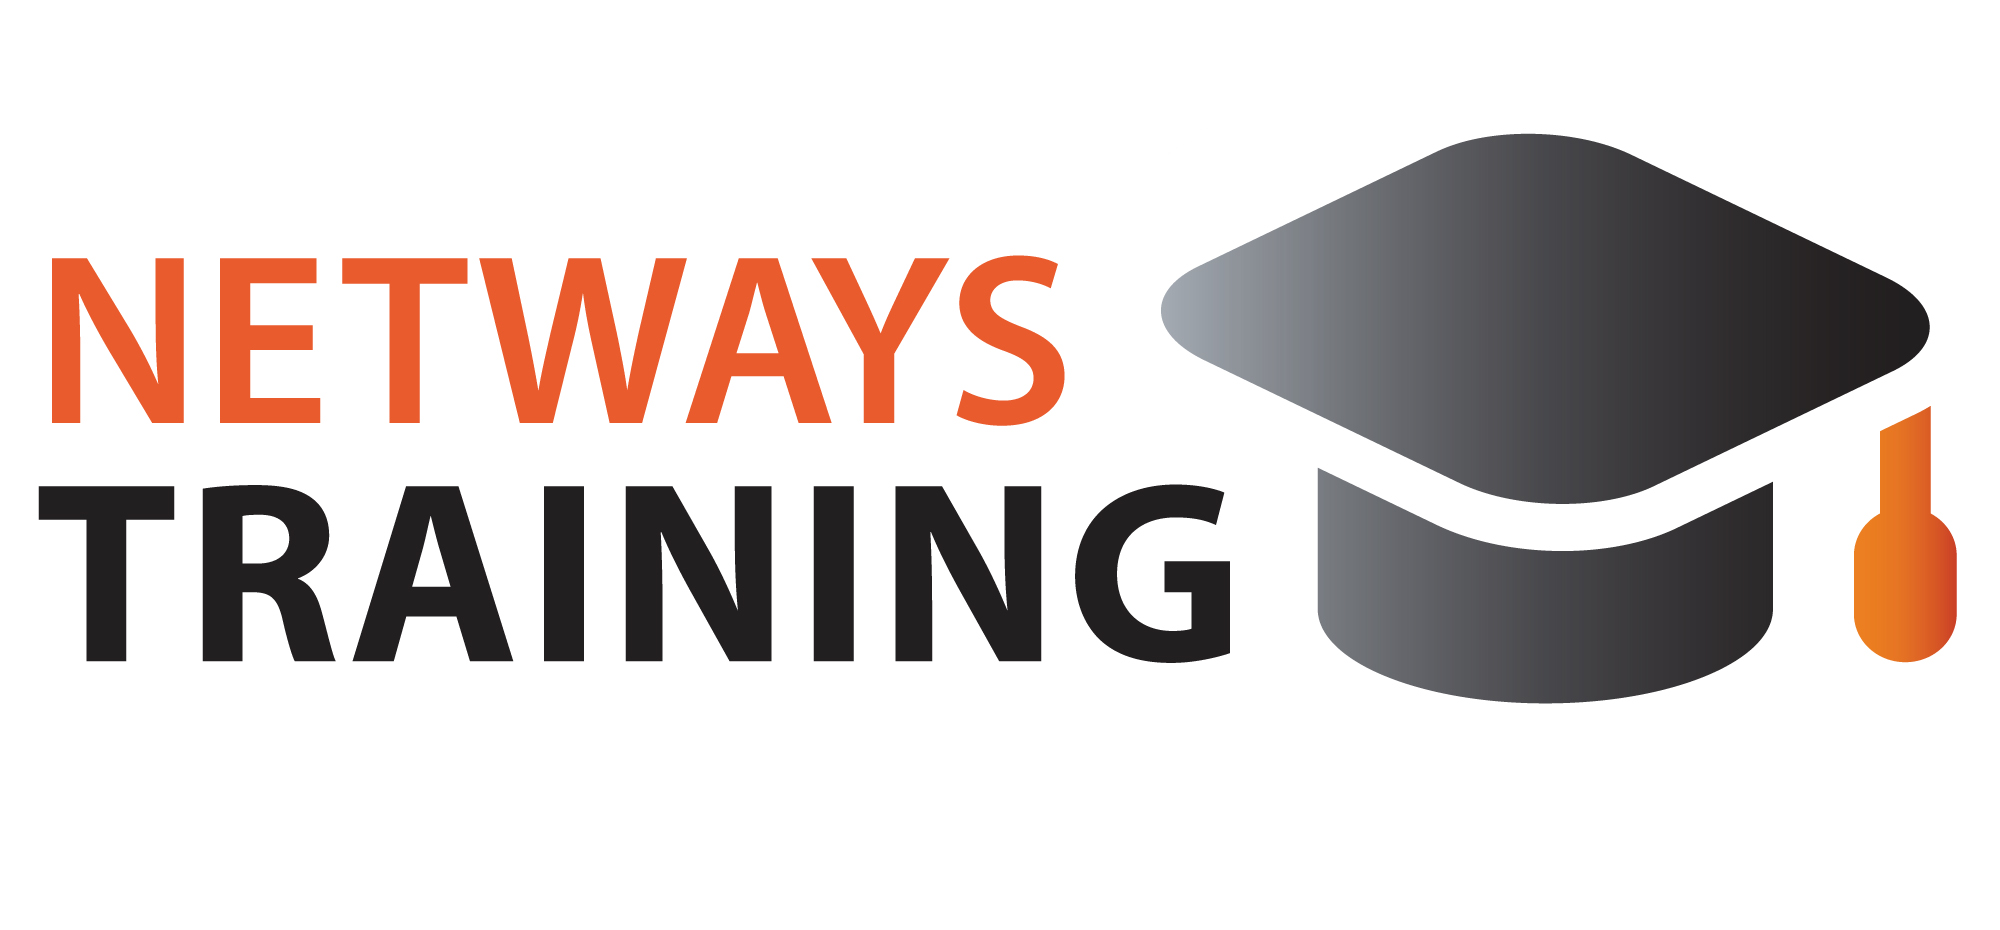 NETWAYS Open Source Trainings